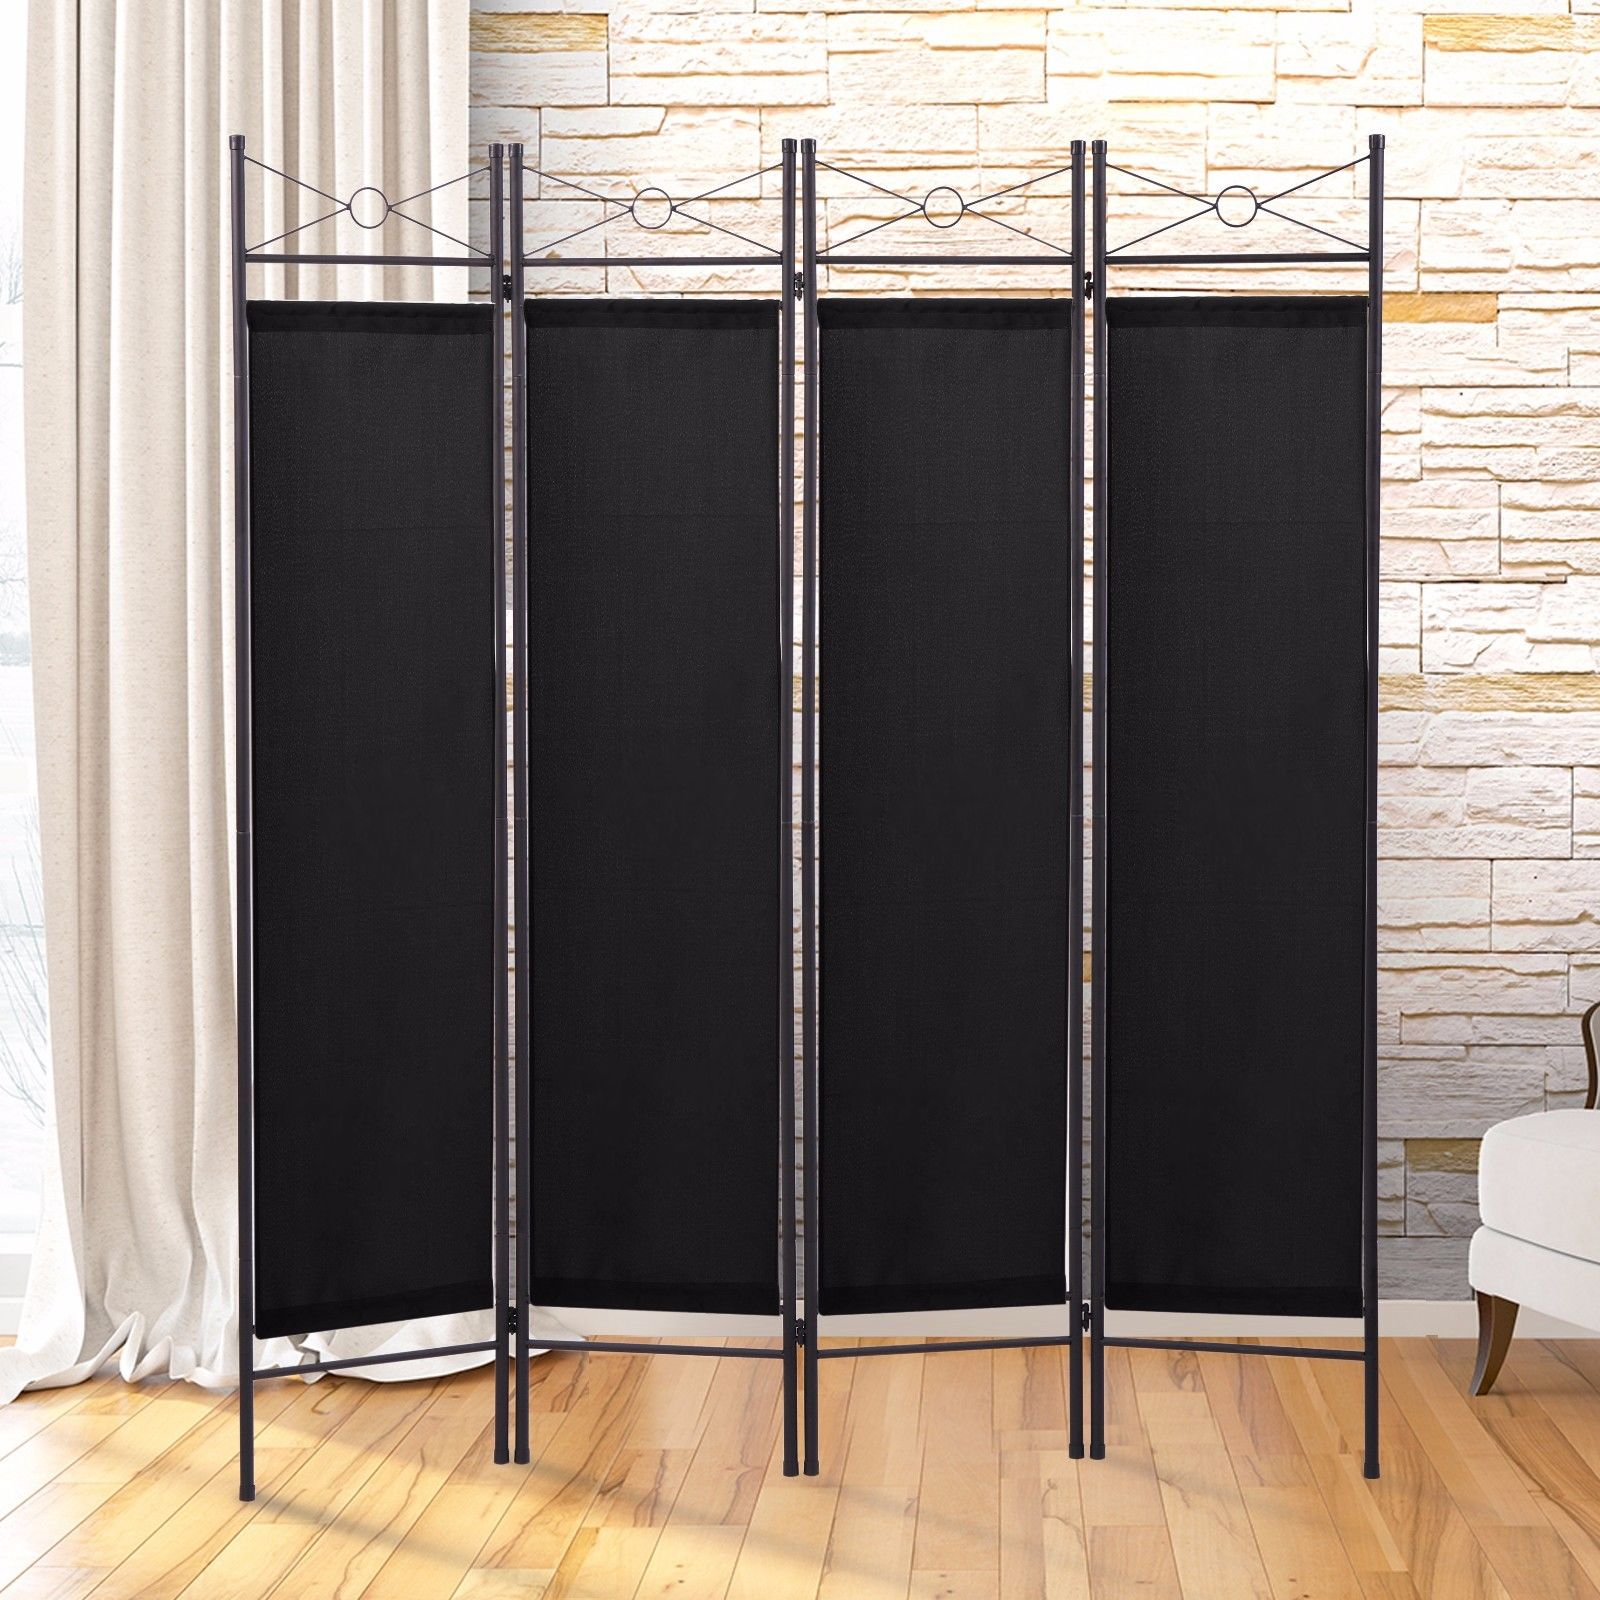 Lazymoon 4 Panel Steel Room Divider Screen Fabric Folding Partition Home  Office Privacy Screen Black